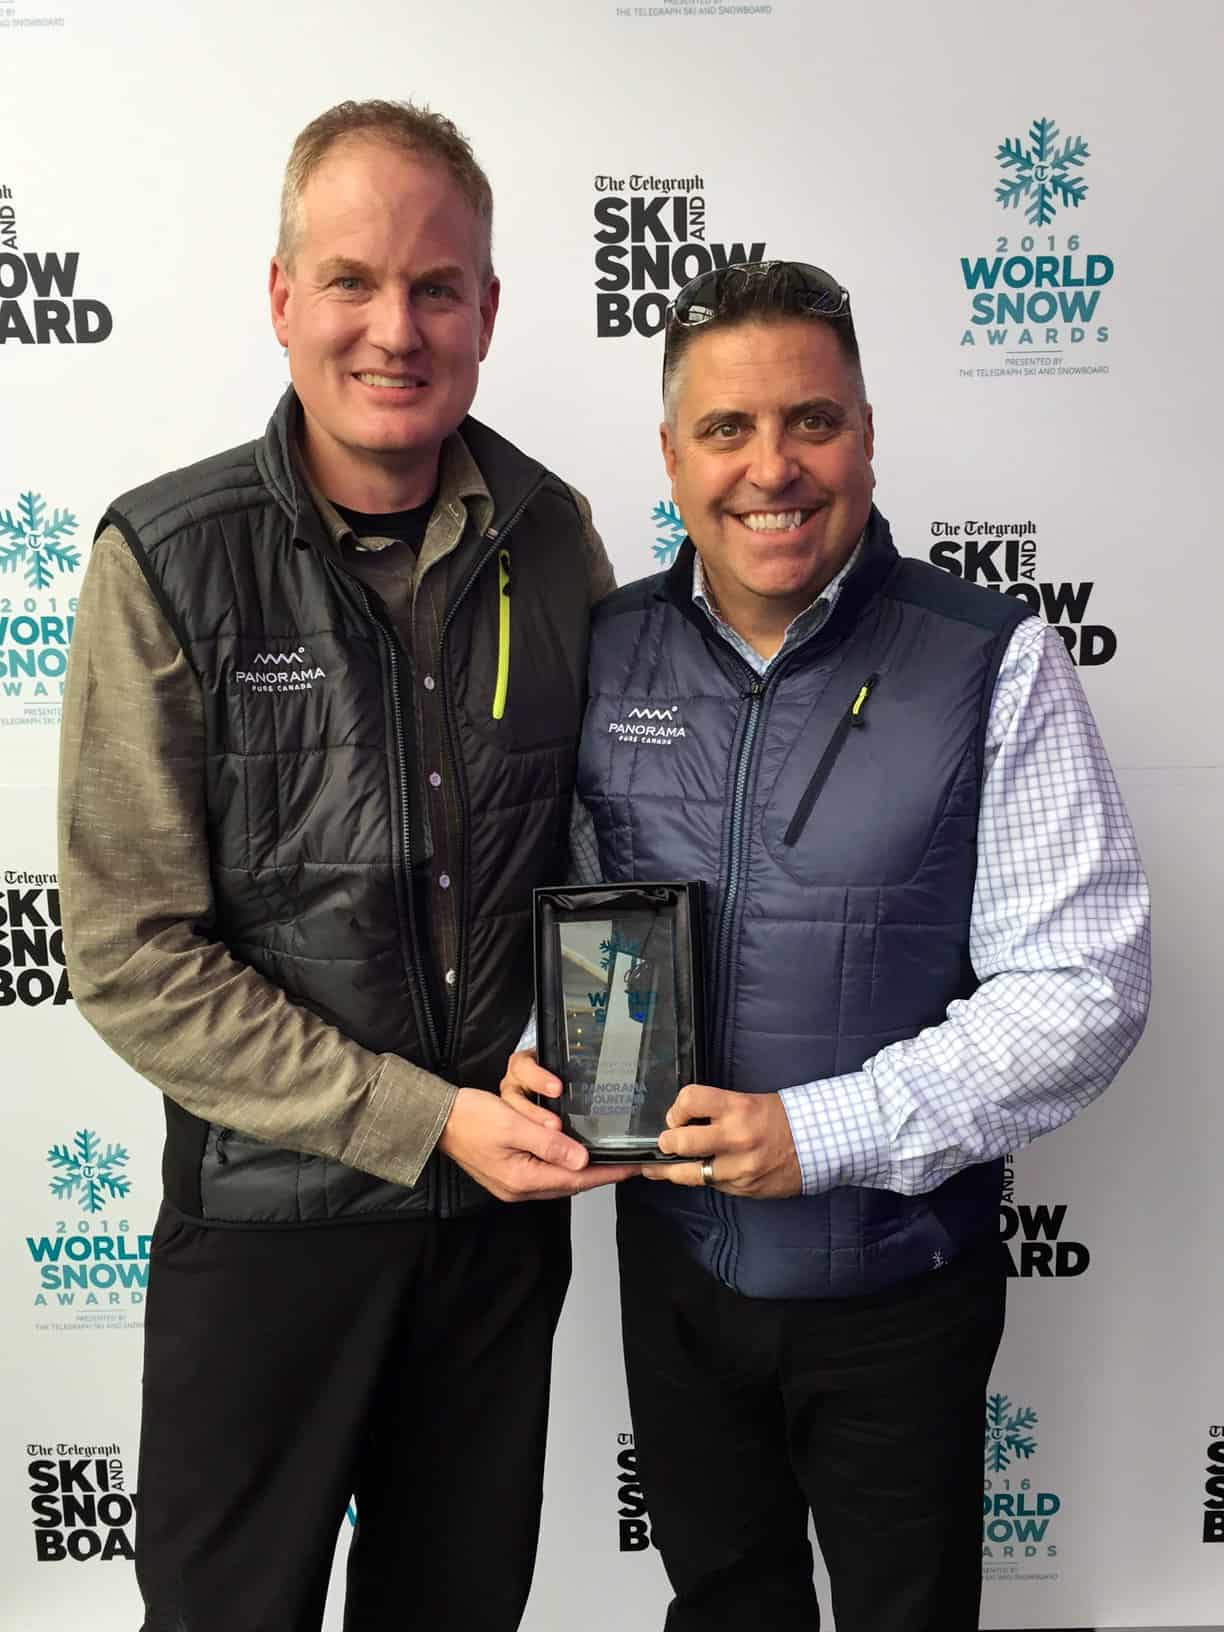 Marke Dickson (left) and Steve Paccagnan (right) of Panorama Mountain Resort accepting the award for North American Resort of the Year at a reception in London UK as part of The Telegraph Ski and Snowboard Show. Photo credit: Panorama Mountain Resort